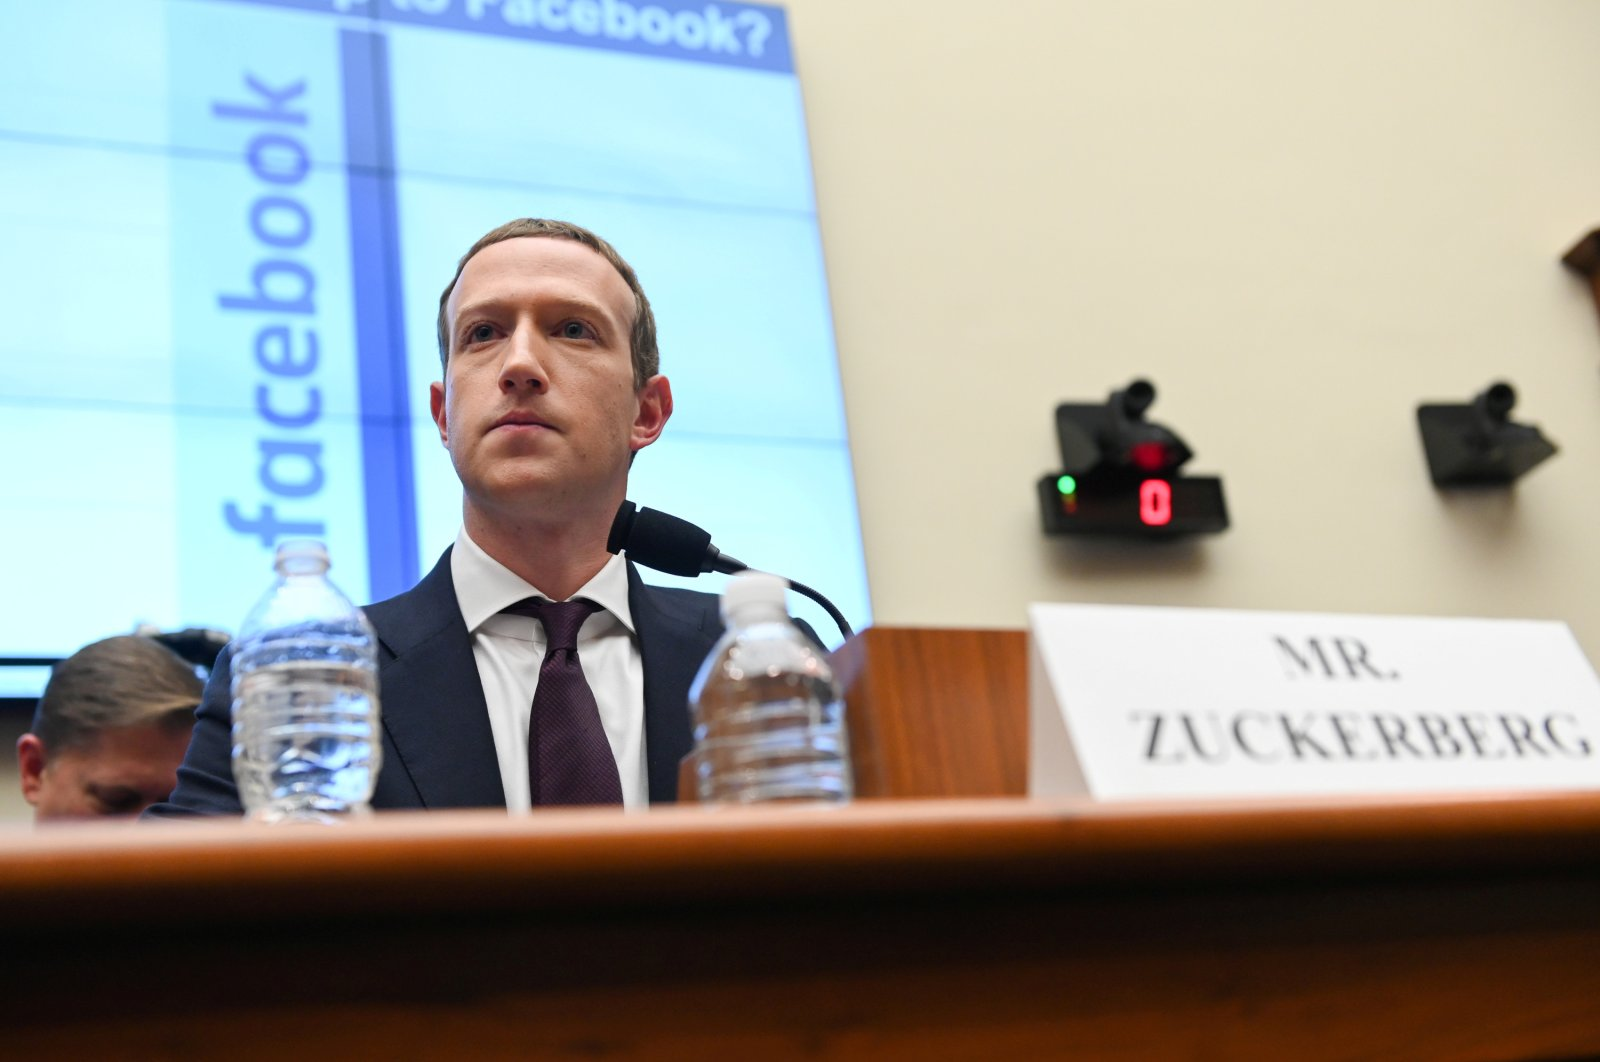 Facebook Chairman and CEO Mark Zuckerberg testifies at a House Financial Services Committee hearing in Washington, Oct. 23, 2019. (Reuters Photo)